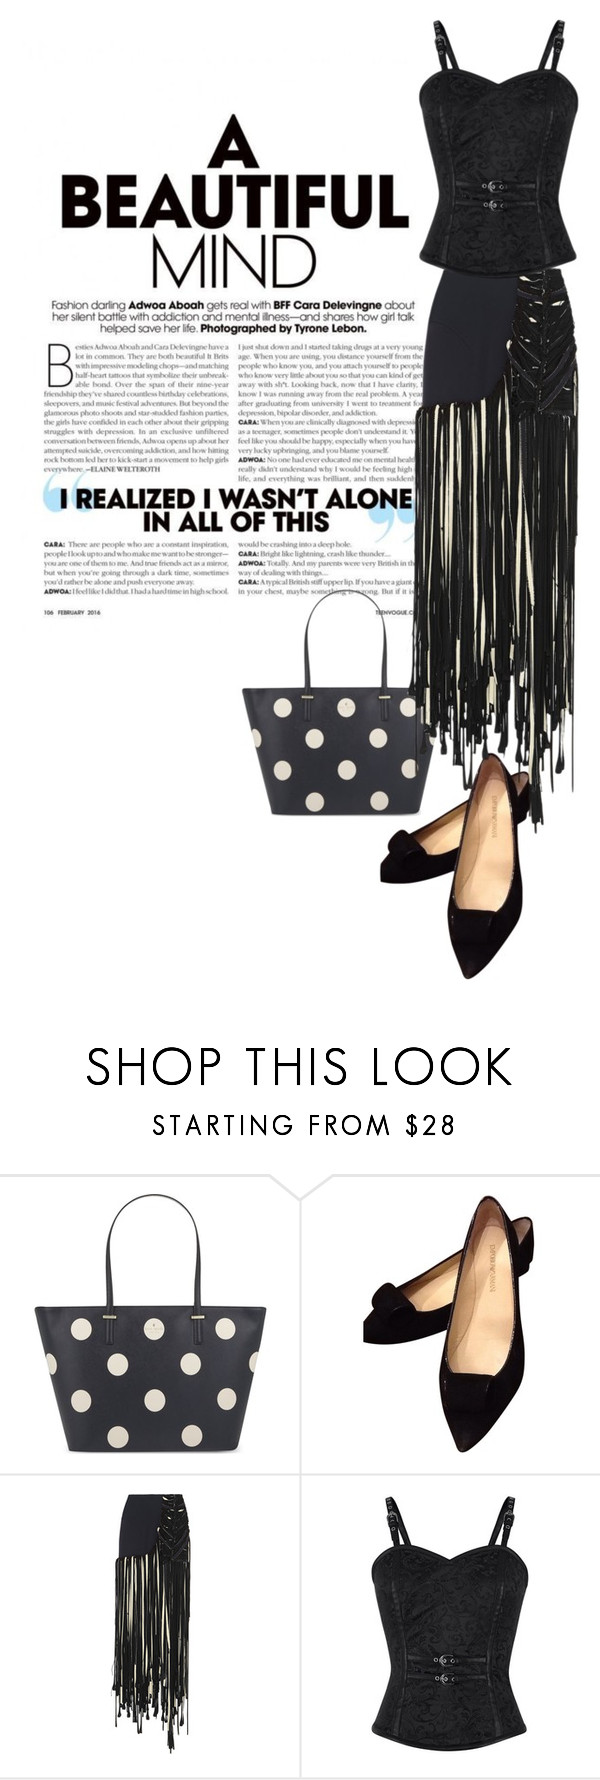 """""""White Polka"""" by meladesigns ❤ liked on Polyvore featuring Kate Spade, Emporio Armani, Esteban Cortazar, polyvoreeditorial, blackbringssexyback and meladesigns"""